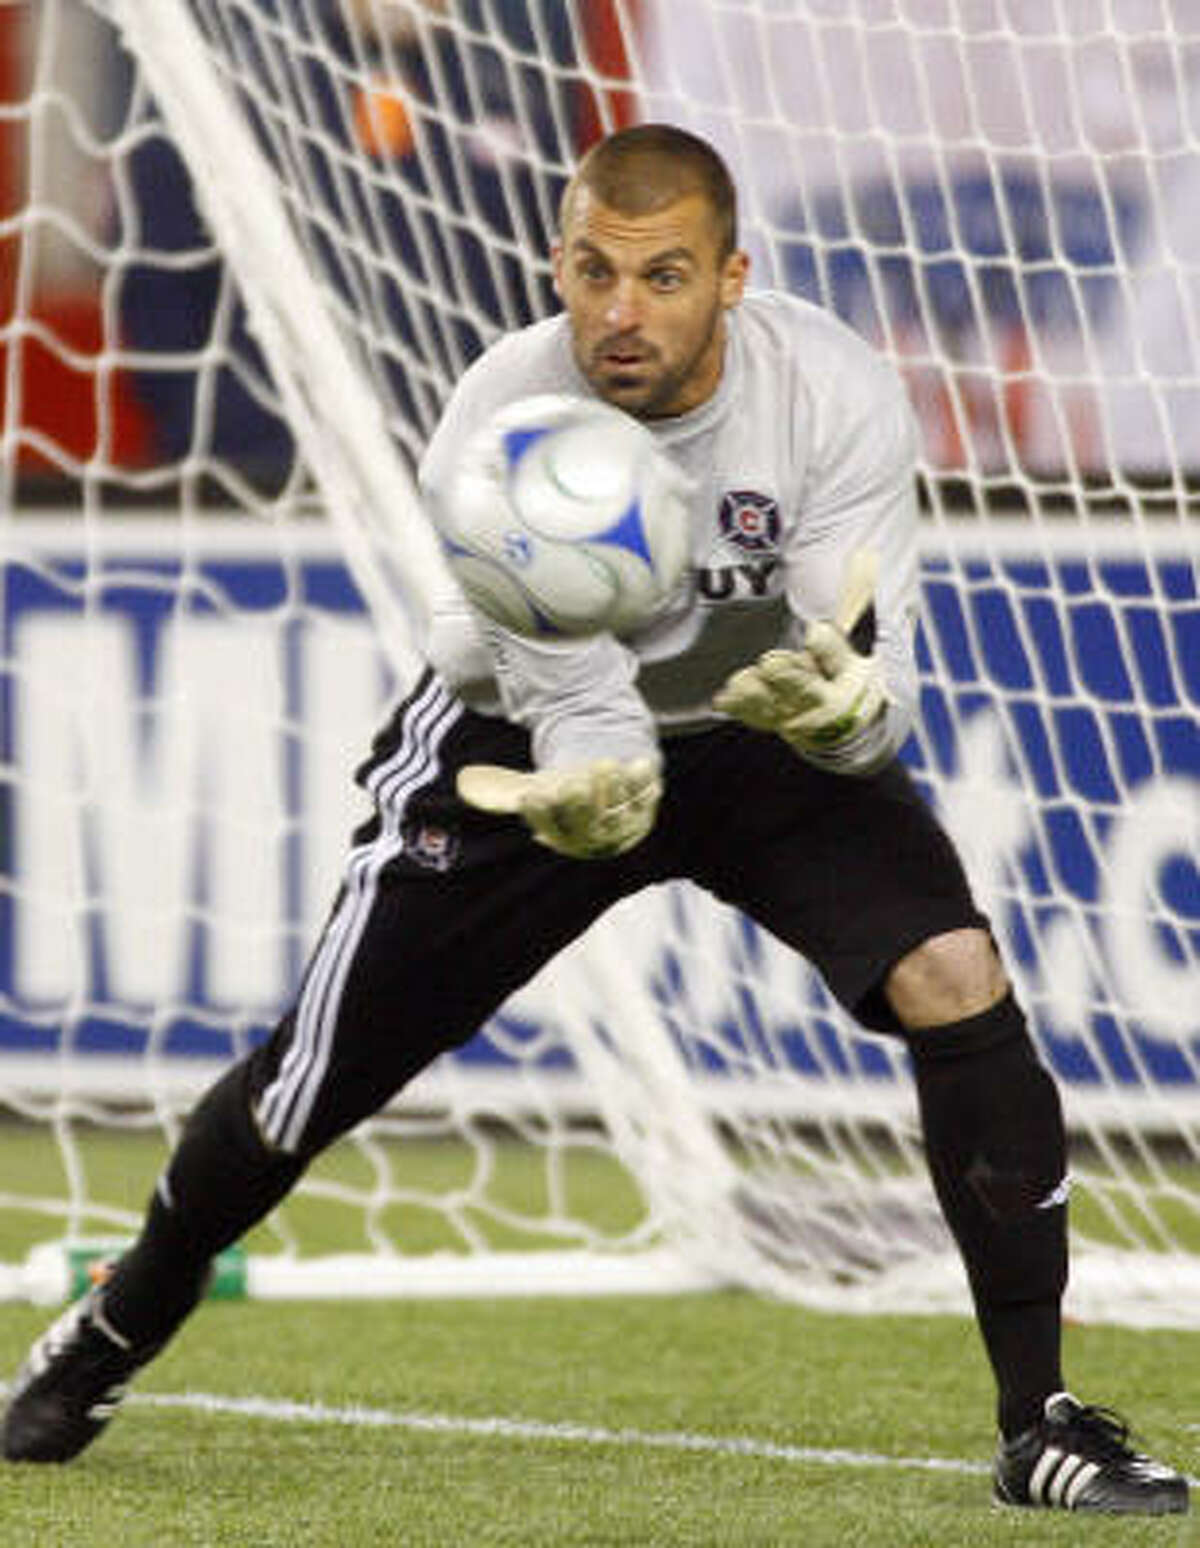 Goalkeeper: Jon Busch Club: Chicago Fire Career Caps: